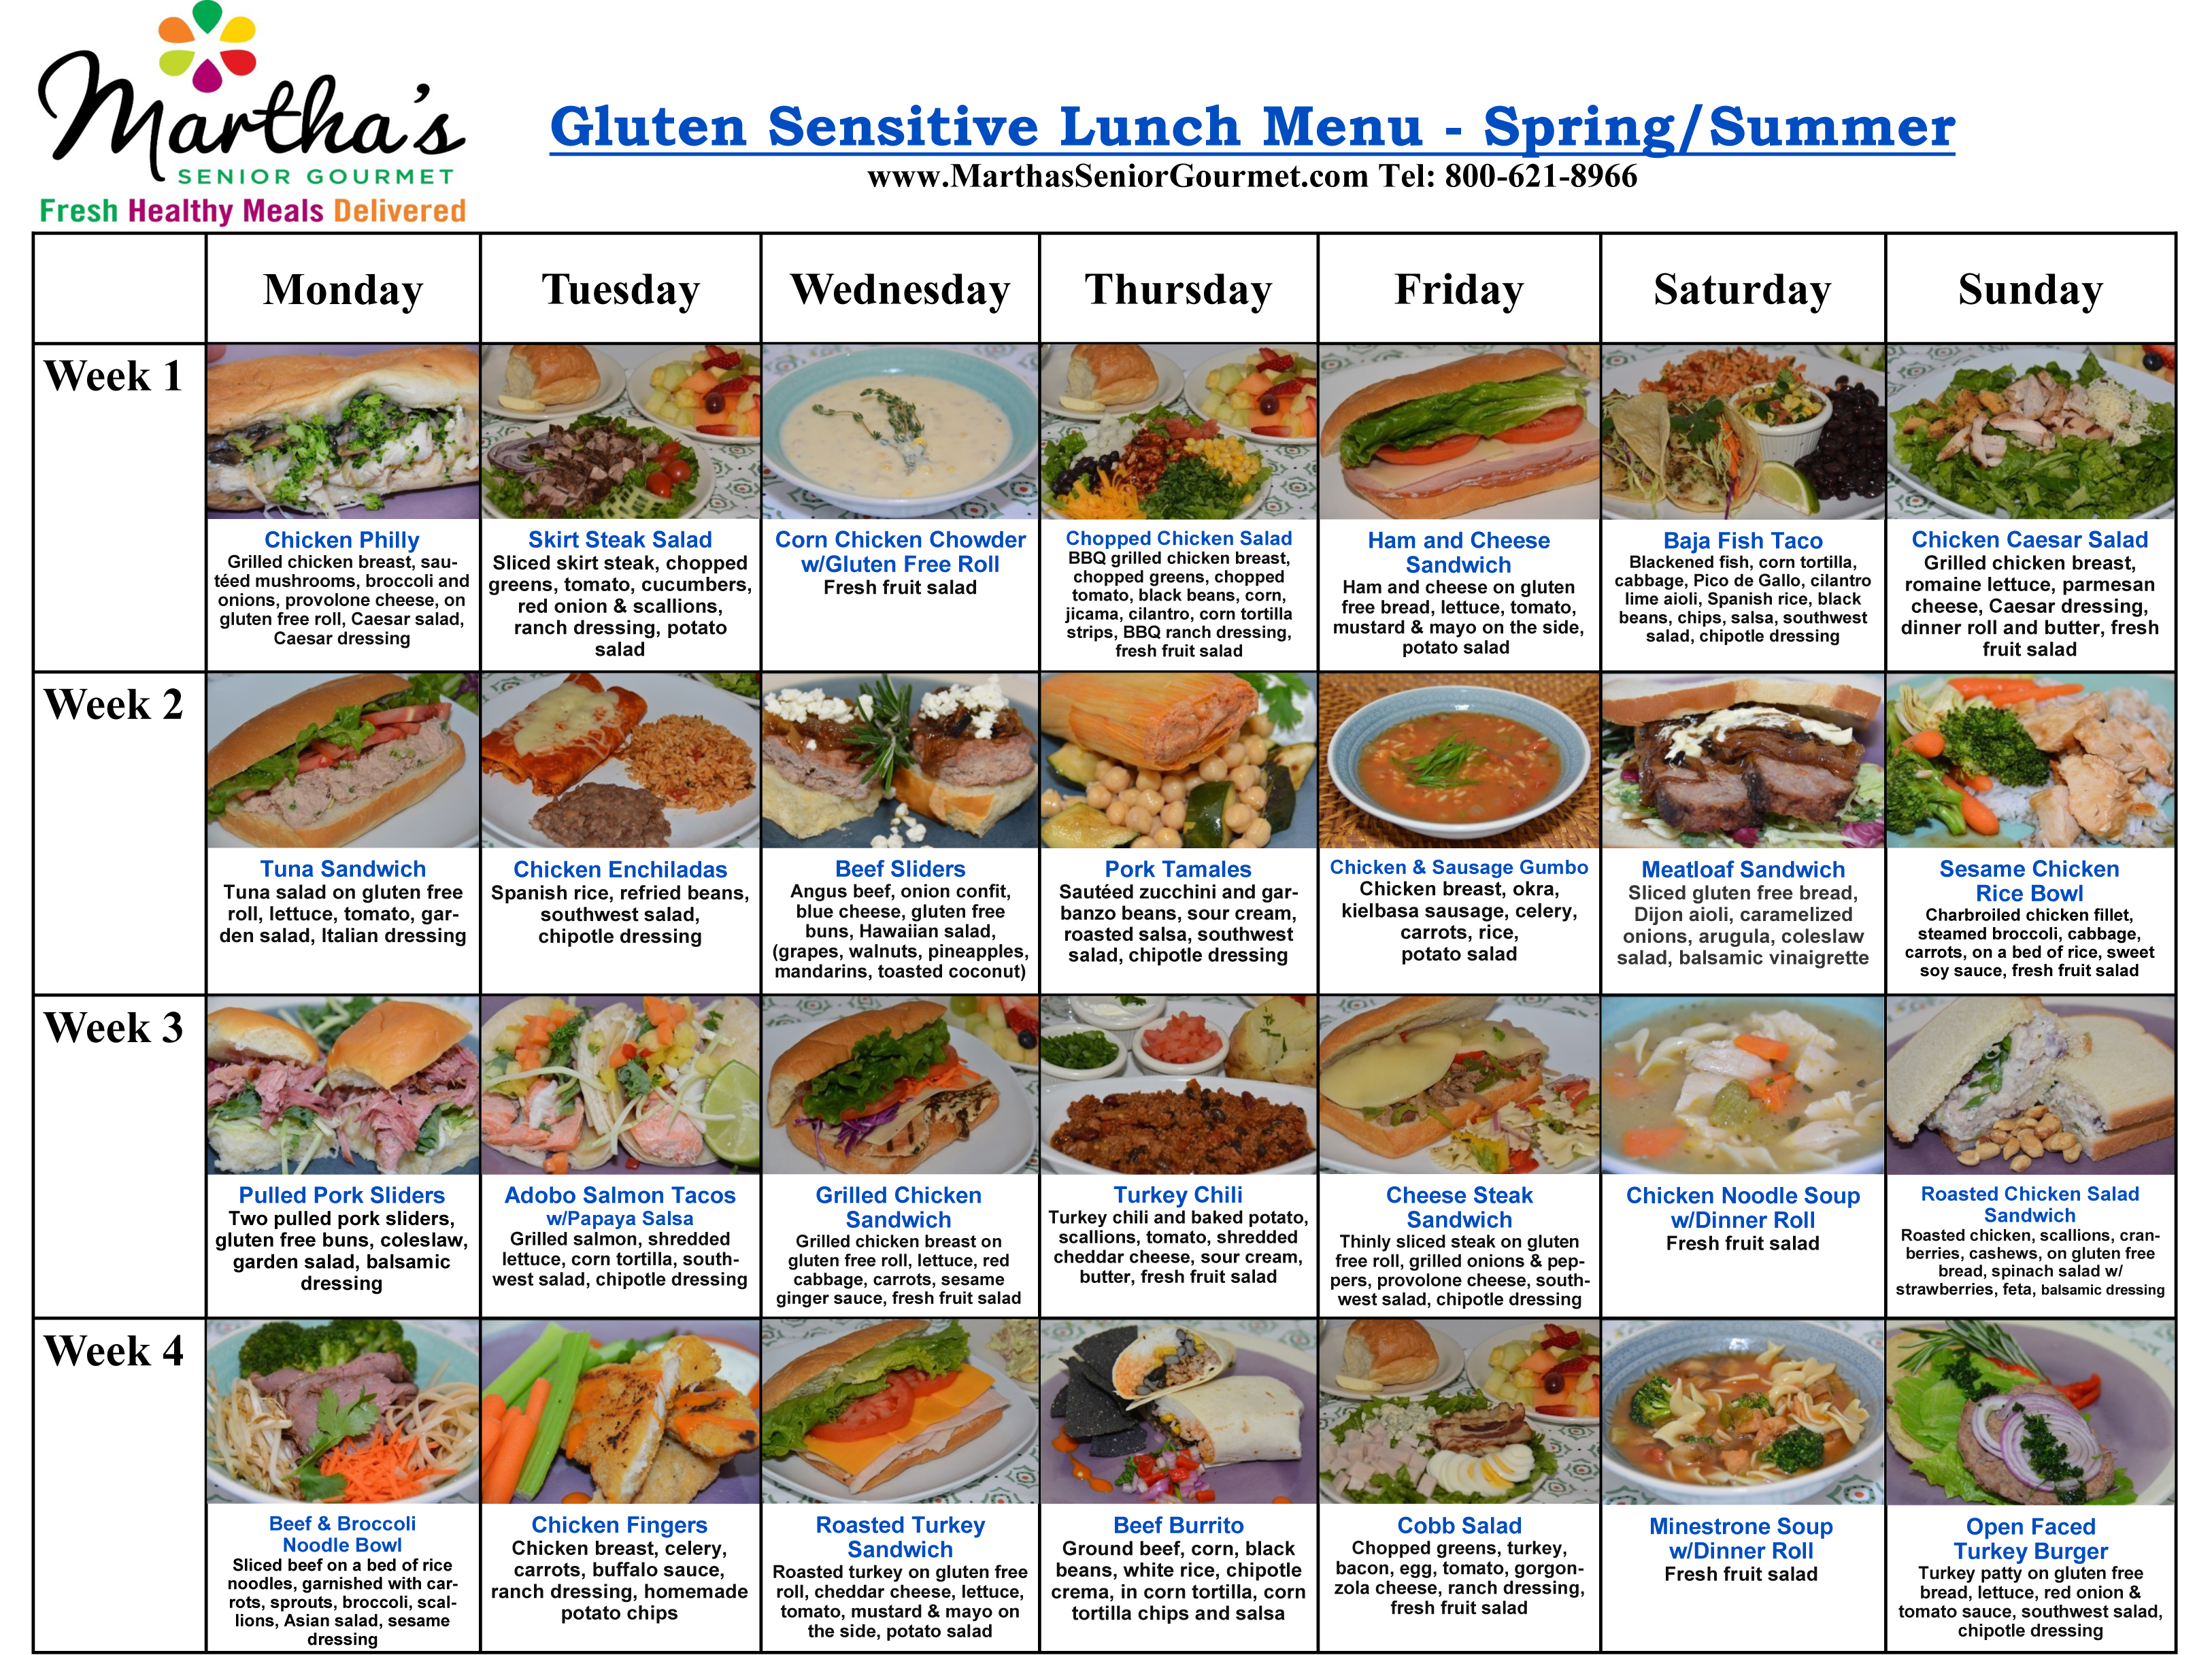 Martha's Senior Gourmet Gluten Sensitive Lunch Menu - Spring/Summer